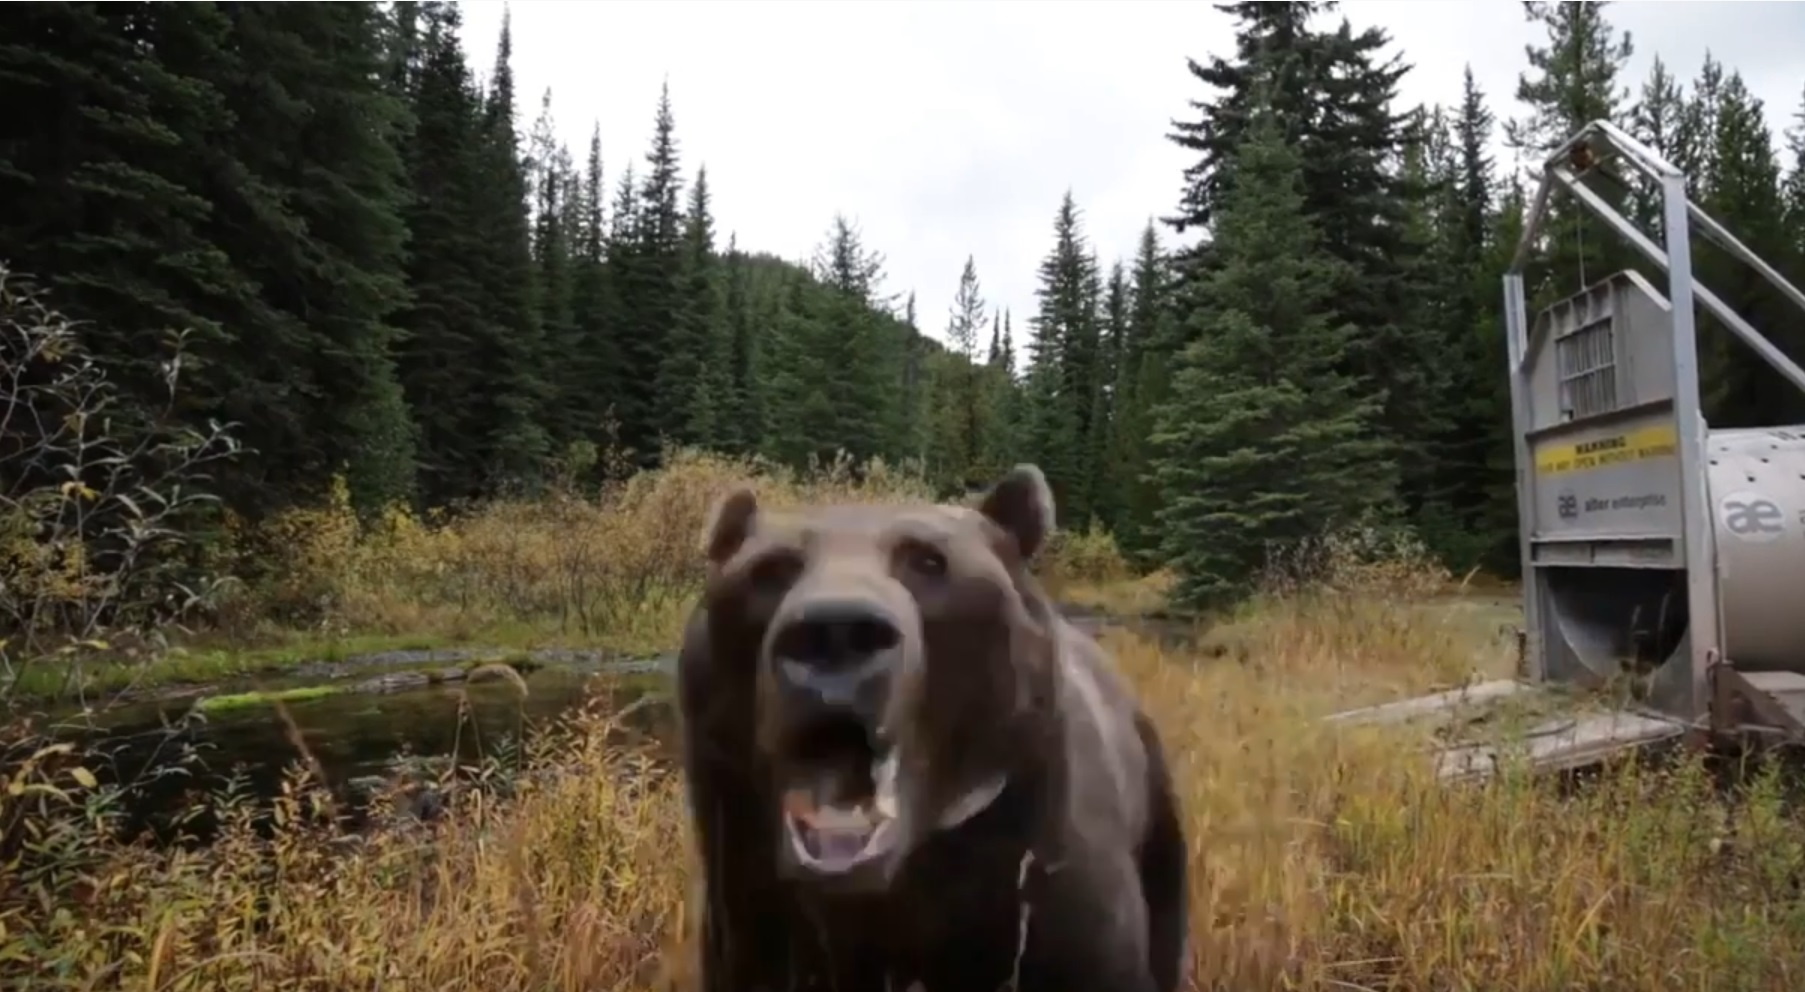 Wild Bear Attacks Camera After Release